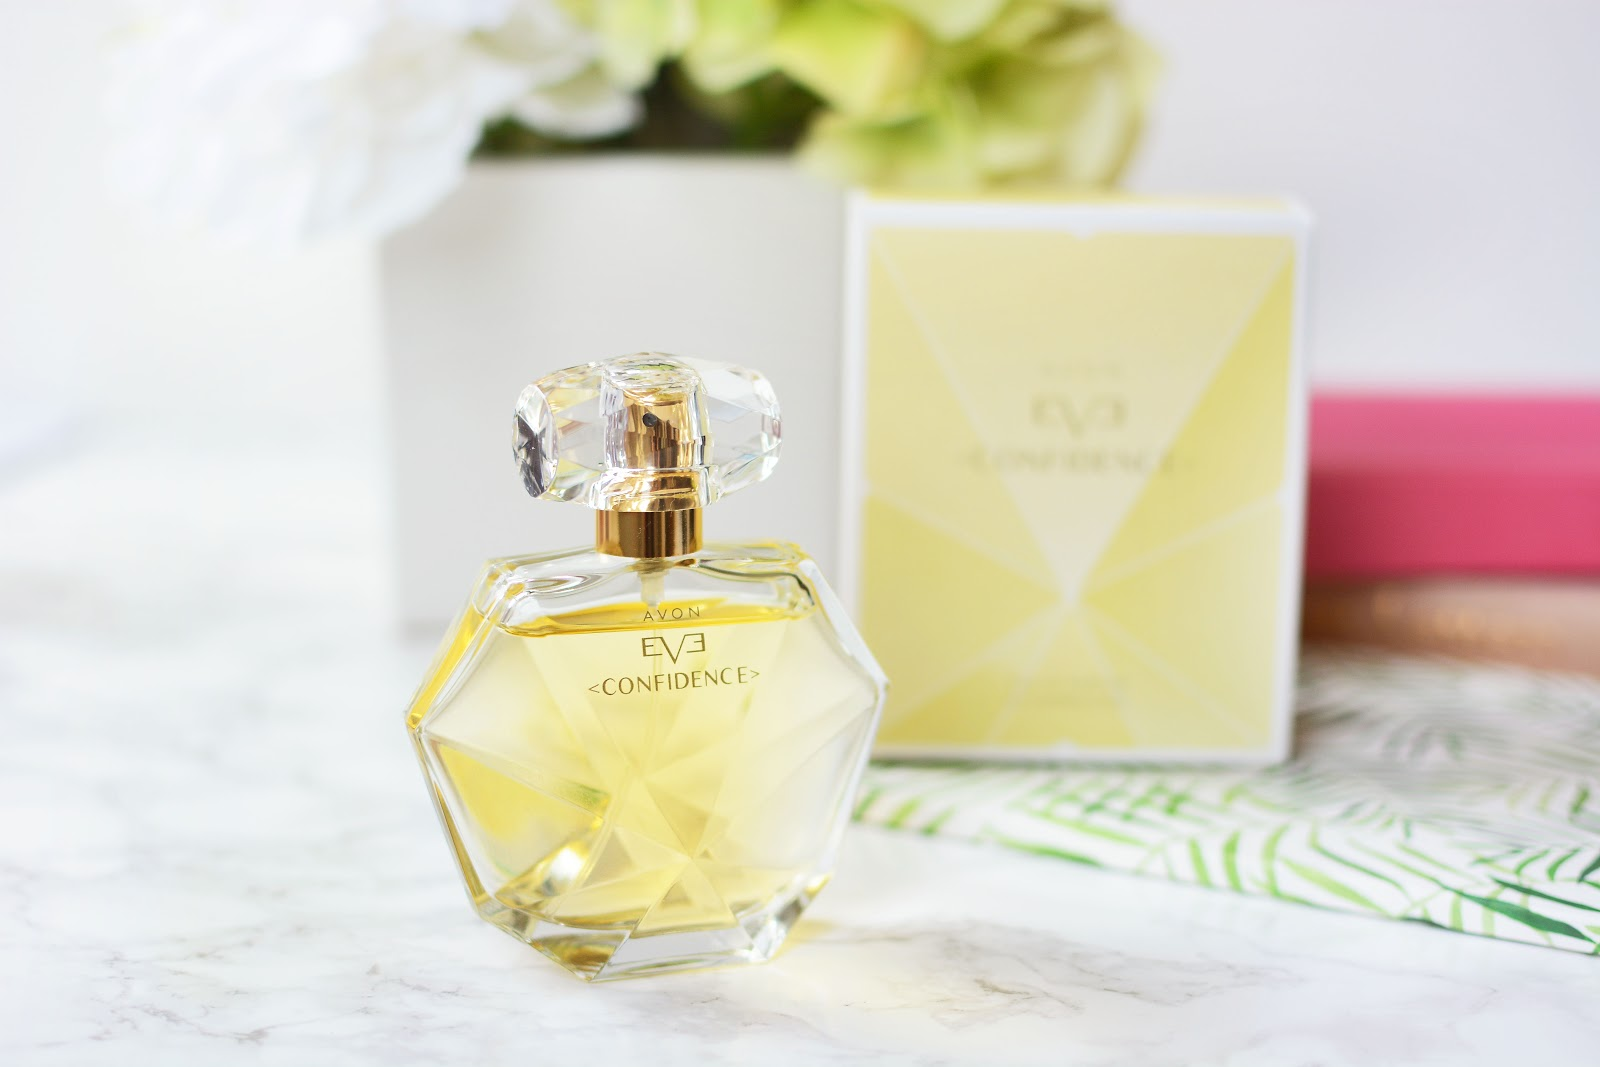 AVON CONFIDENCE perfume from the EVE Discovery collection, avon eve discovery perfume range